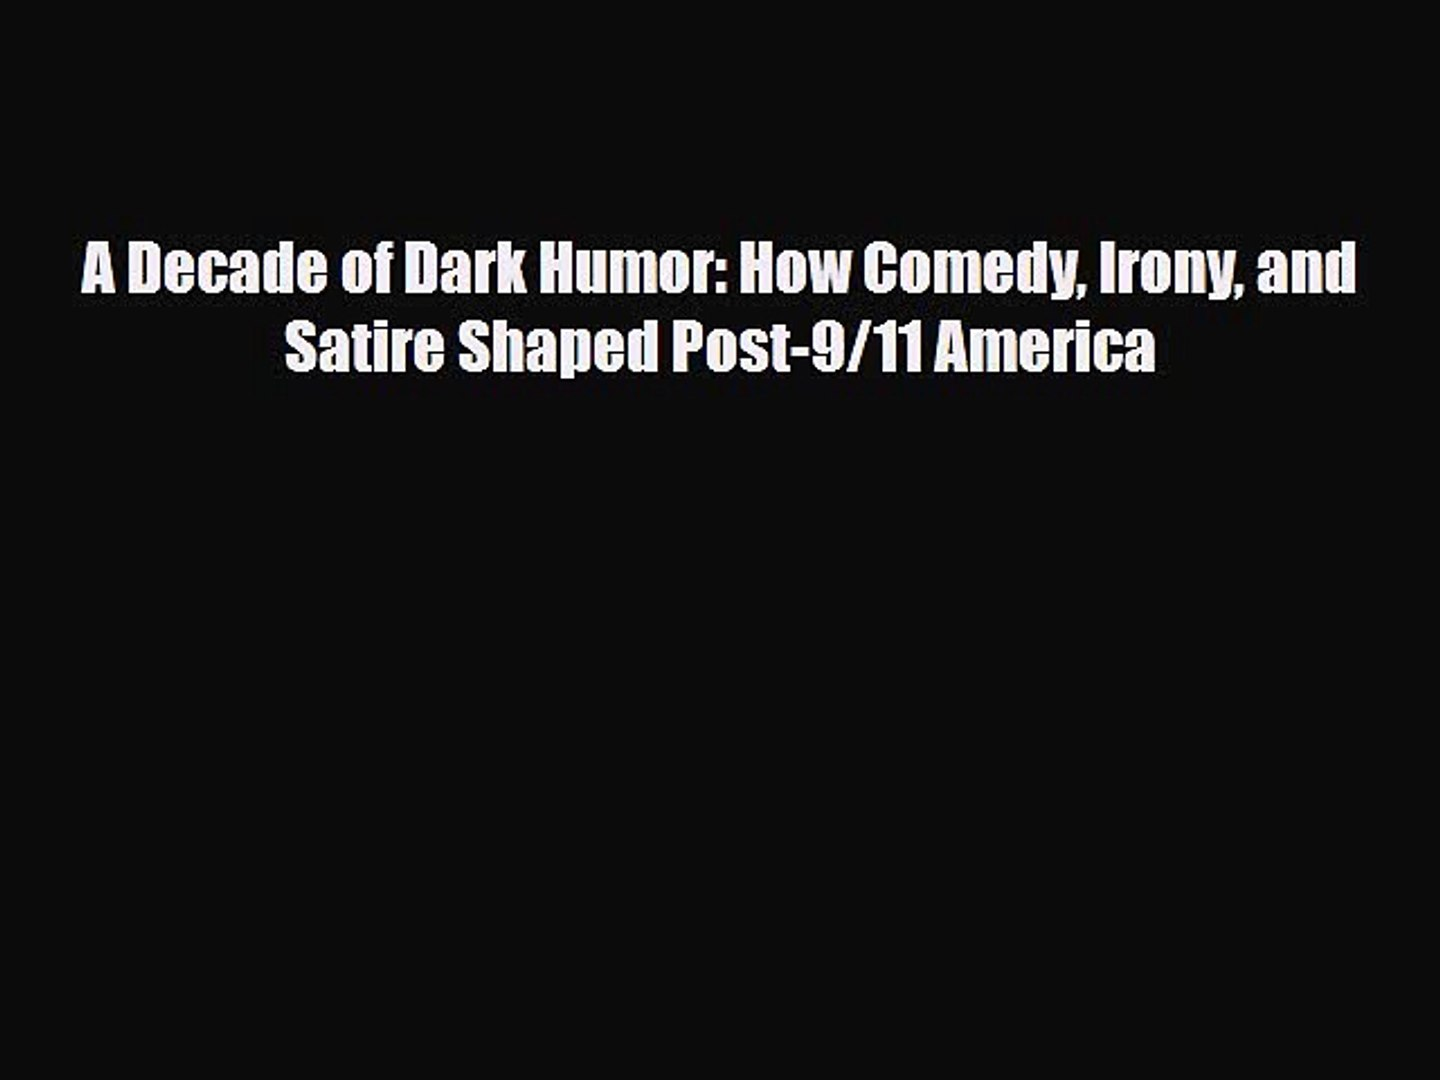 A Decade of Dark Humor: How Comedy, Irony, and Satire Shaped Post-9 11 America